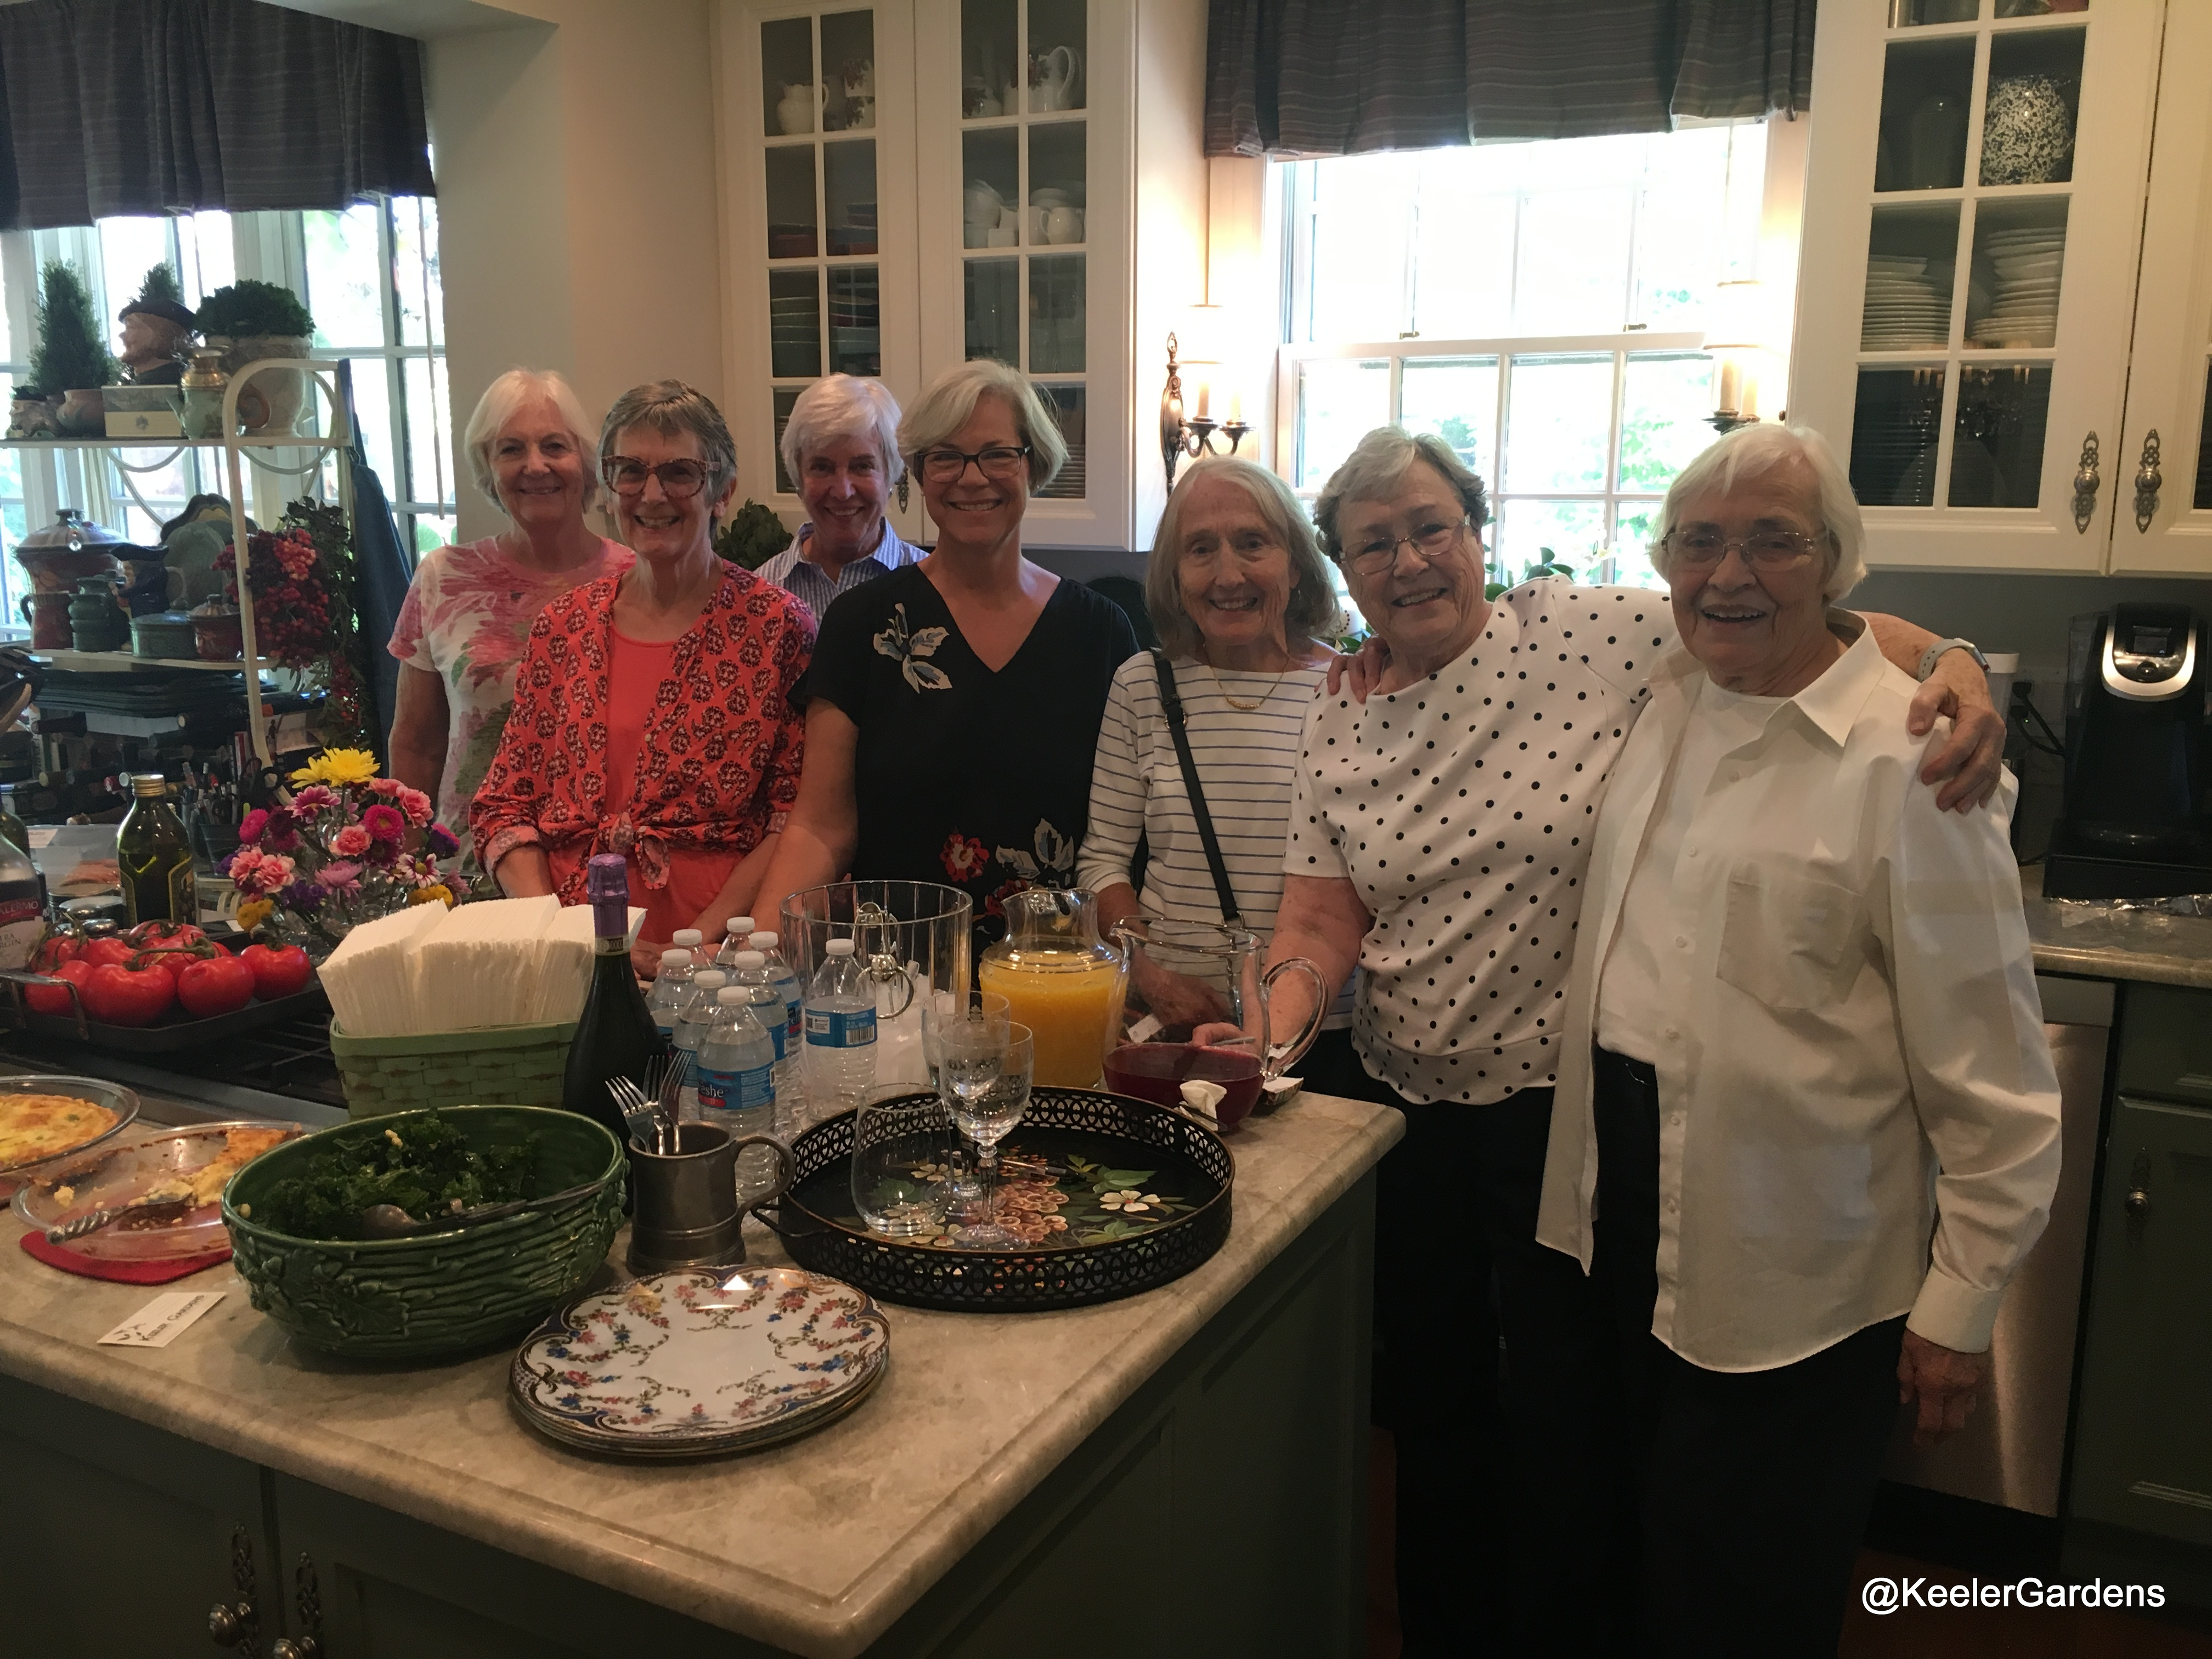 A group of ladies poses for a picture in a well appointed kitchen. On the island there is a bountiful display of food and beverage.